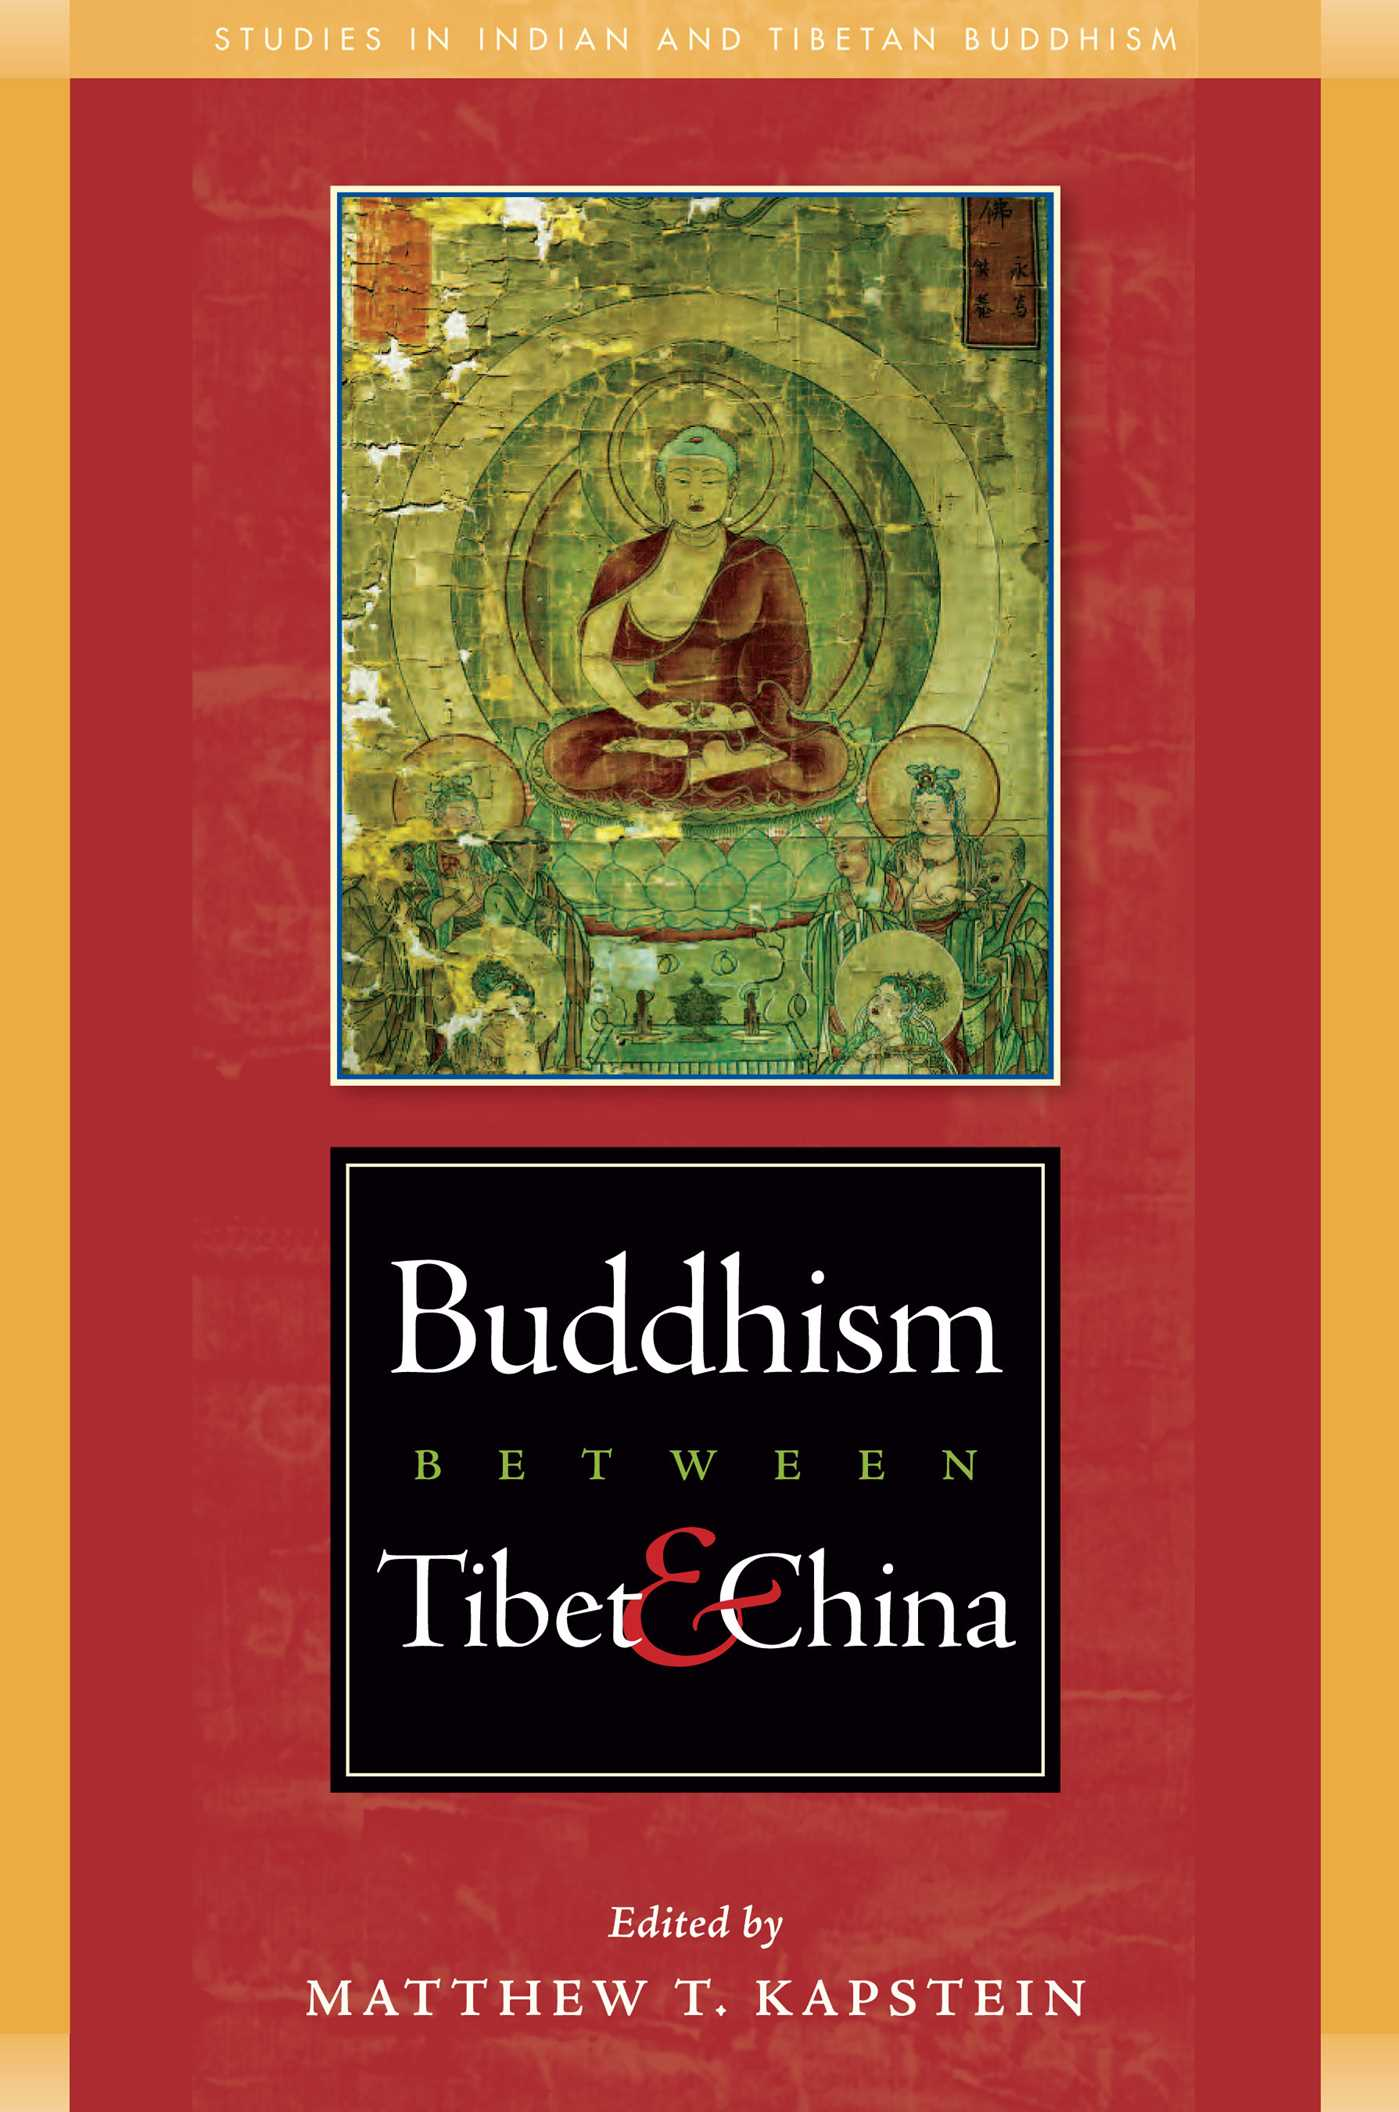 tibet and china history of a complex relationship in economics